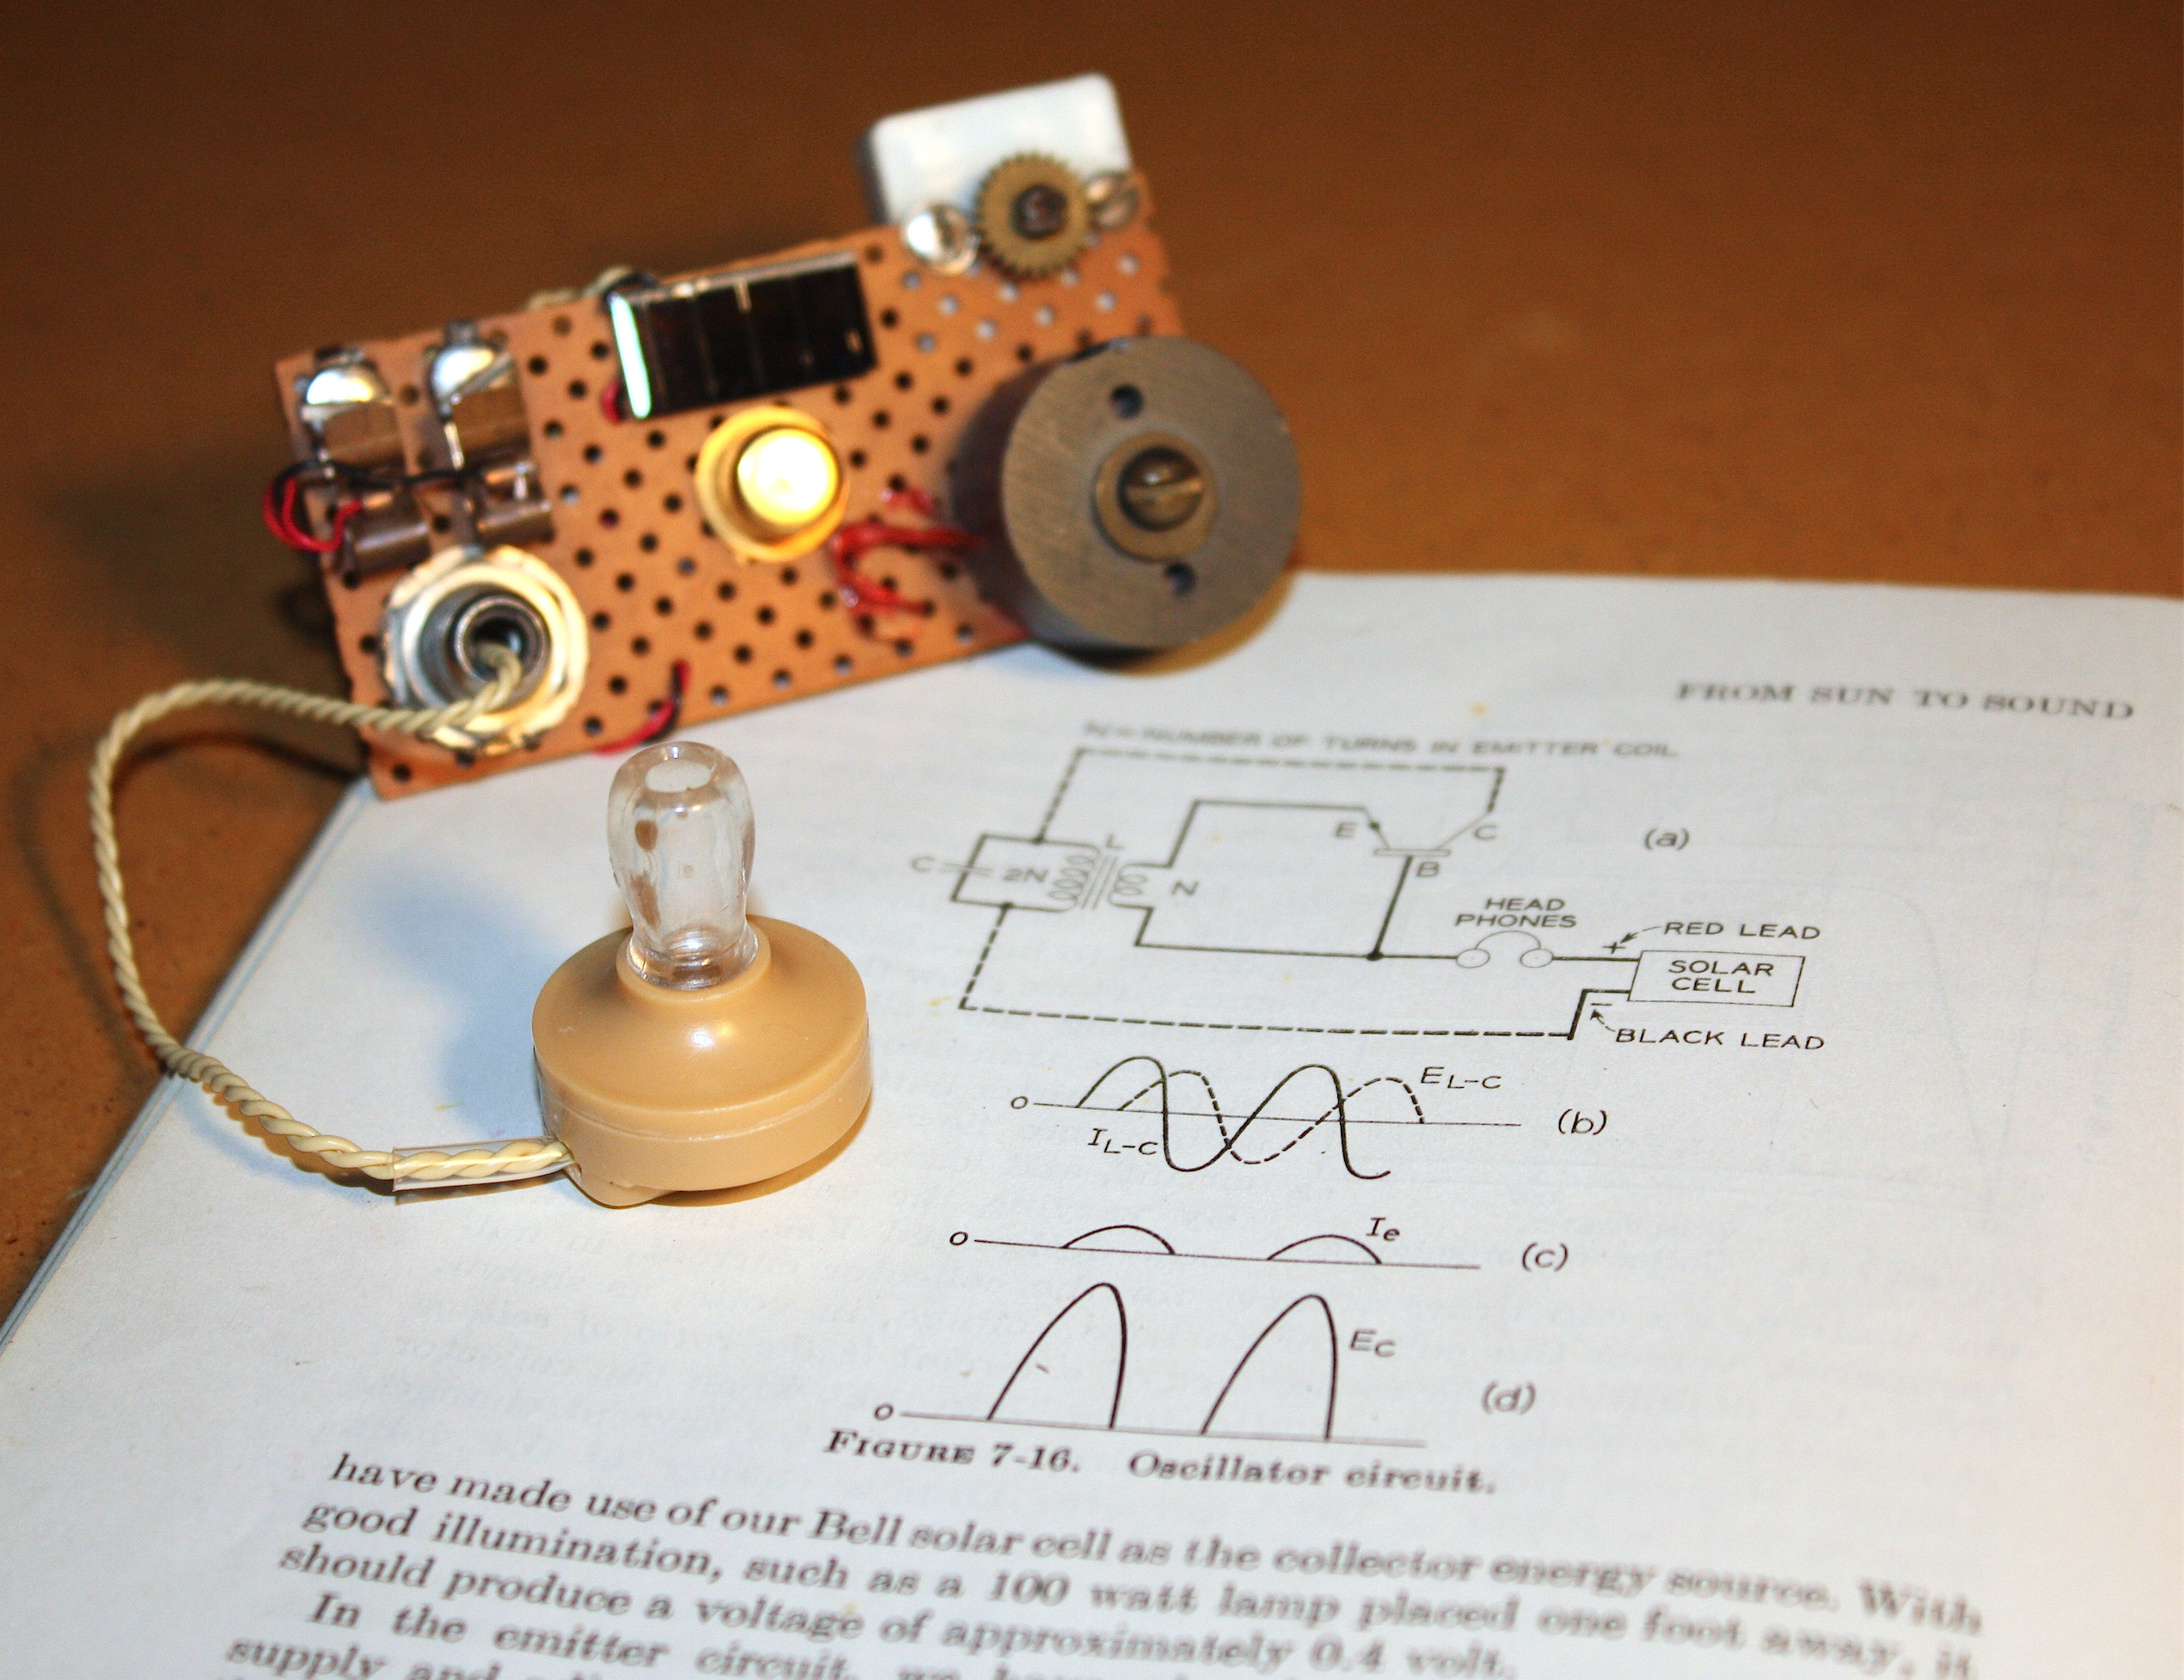 Profile Dr Ed Wollack Crystal Portsmout Oscillator Circuit Automotivecircuit Sled Kite Colpitts An Illustration Of A Circuitry